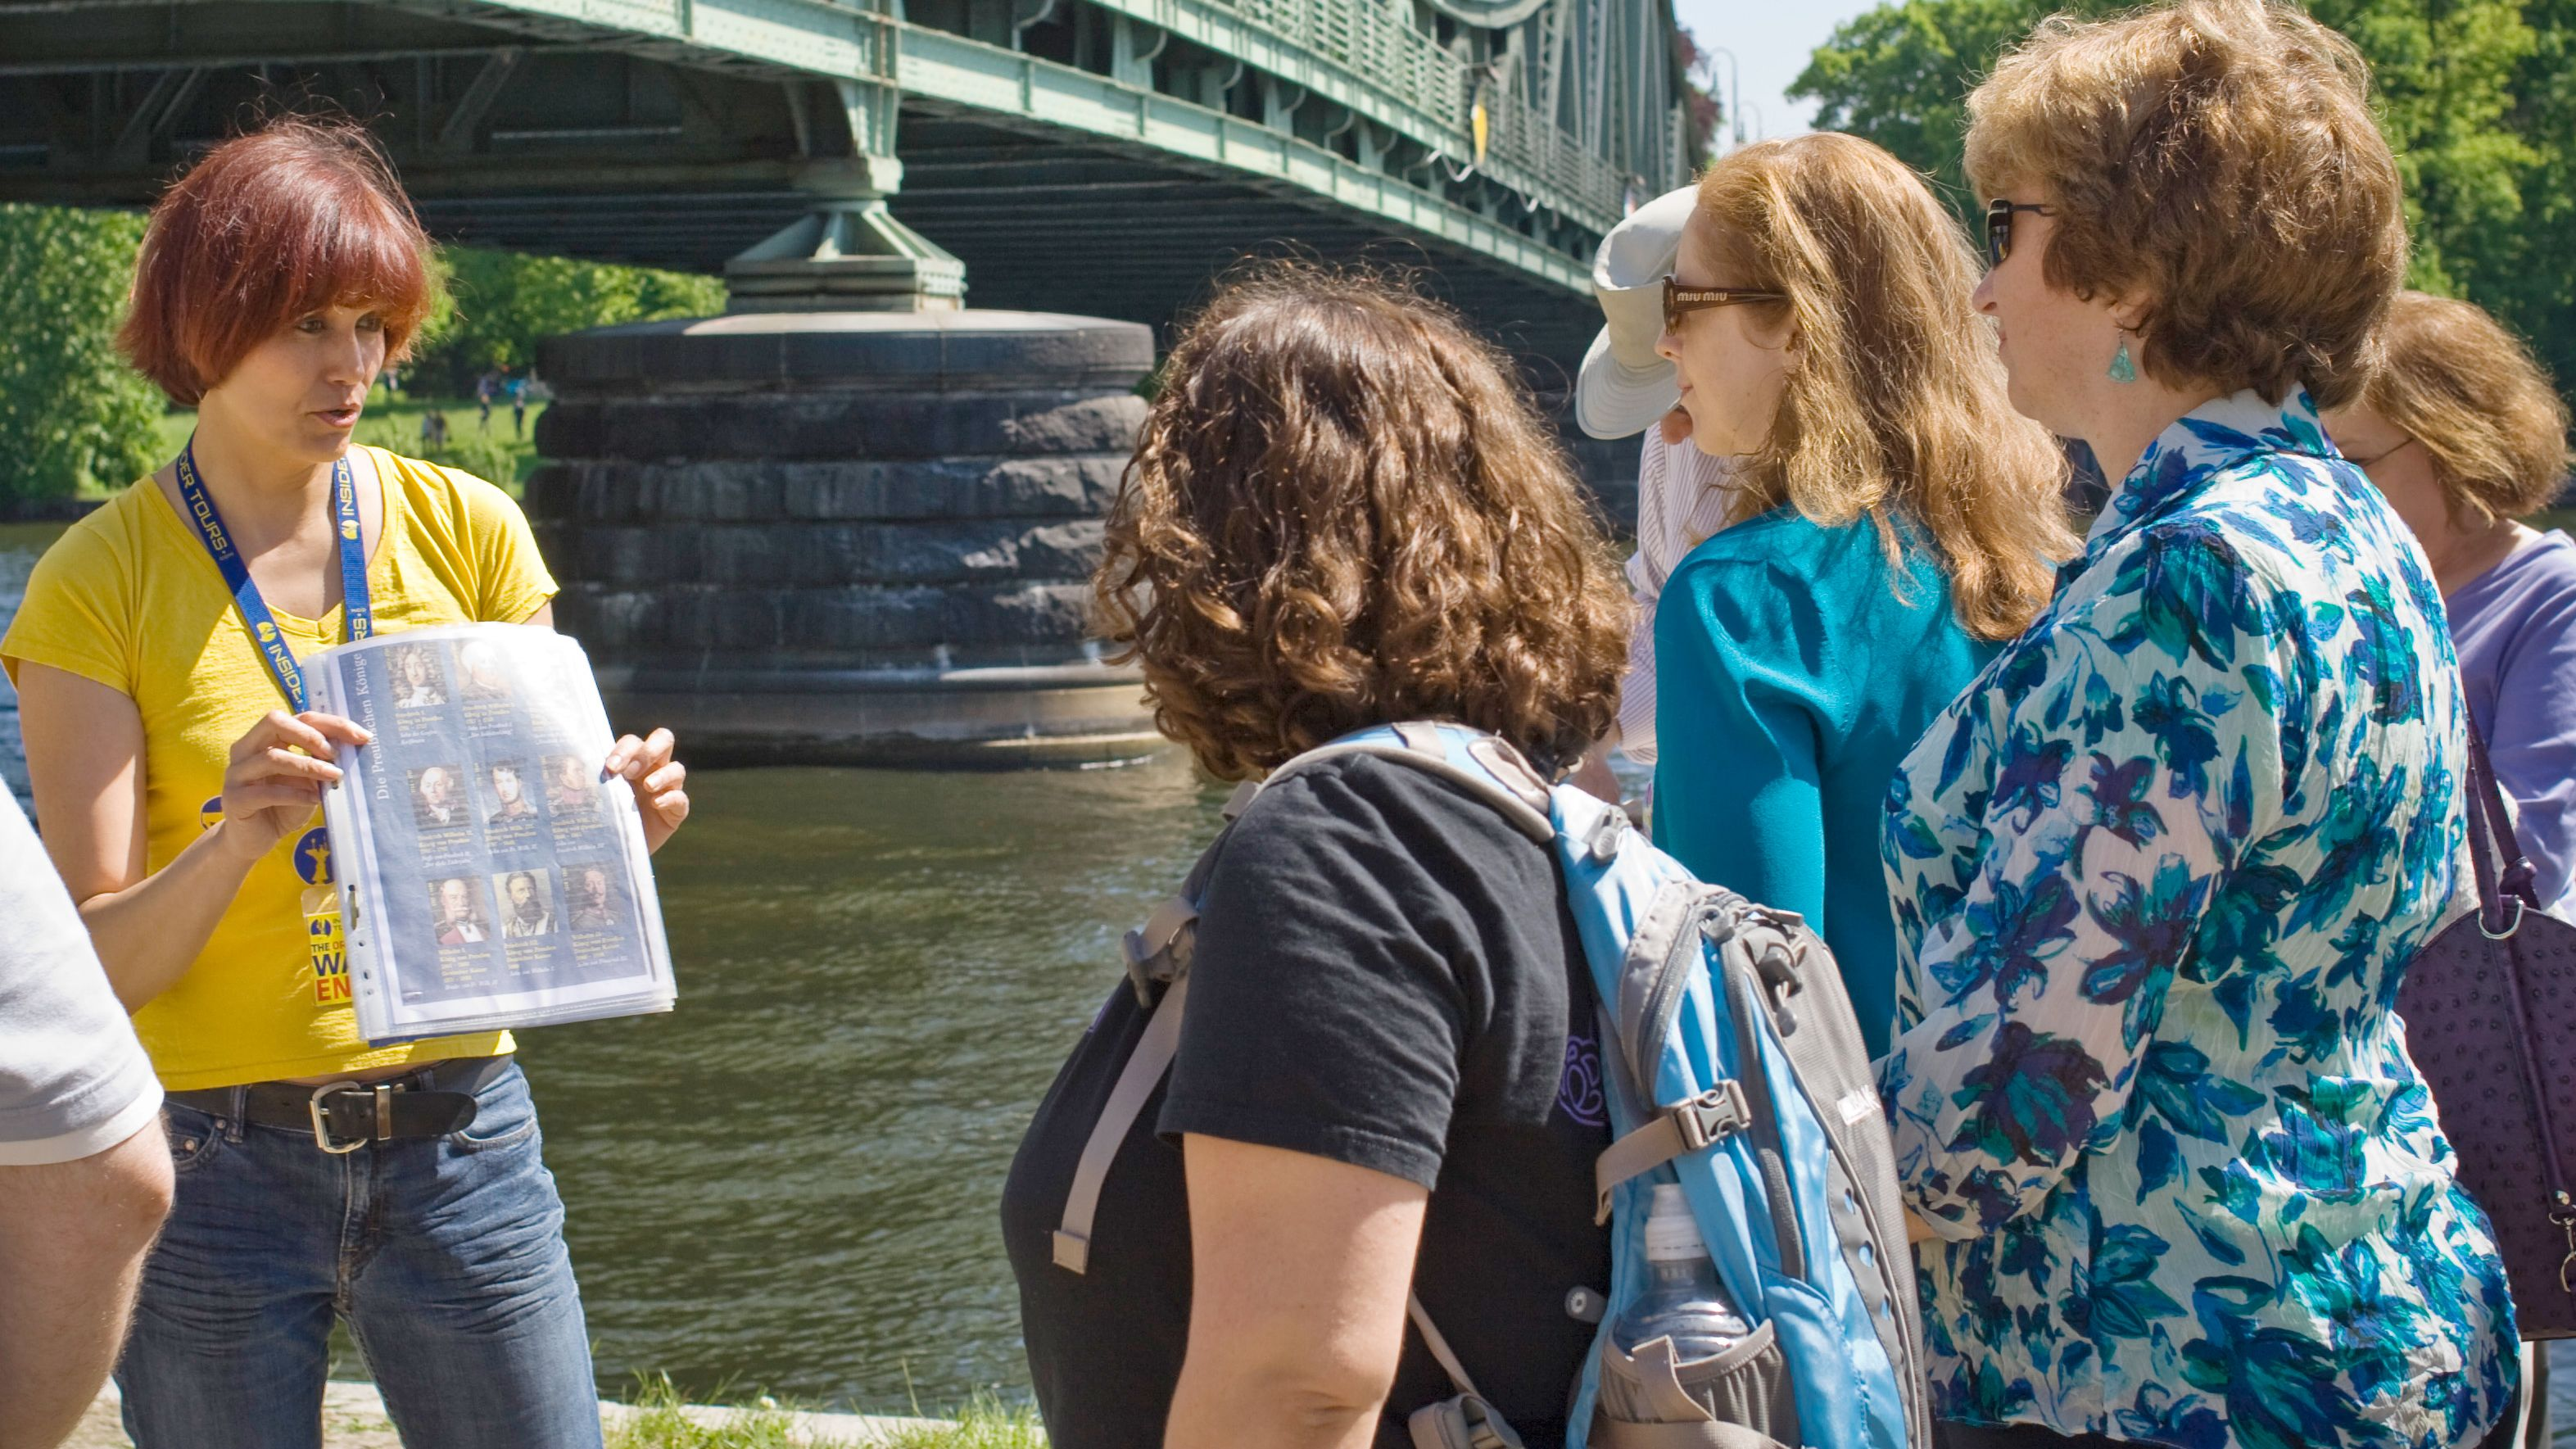 Tour guide talking to group by river in Potsdam